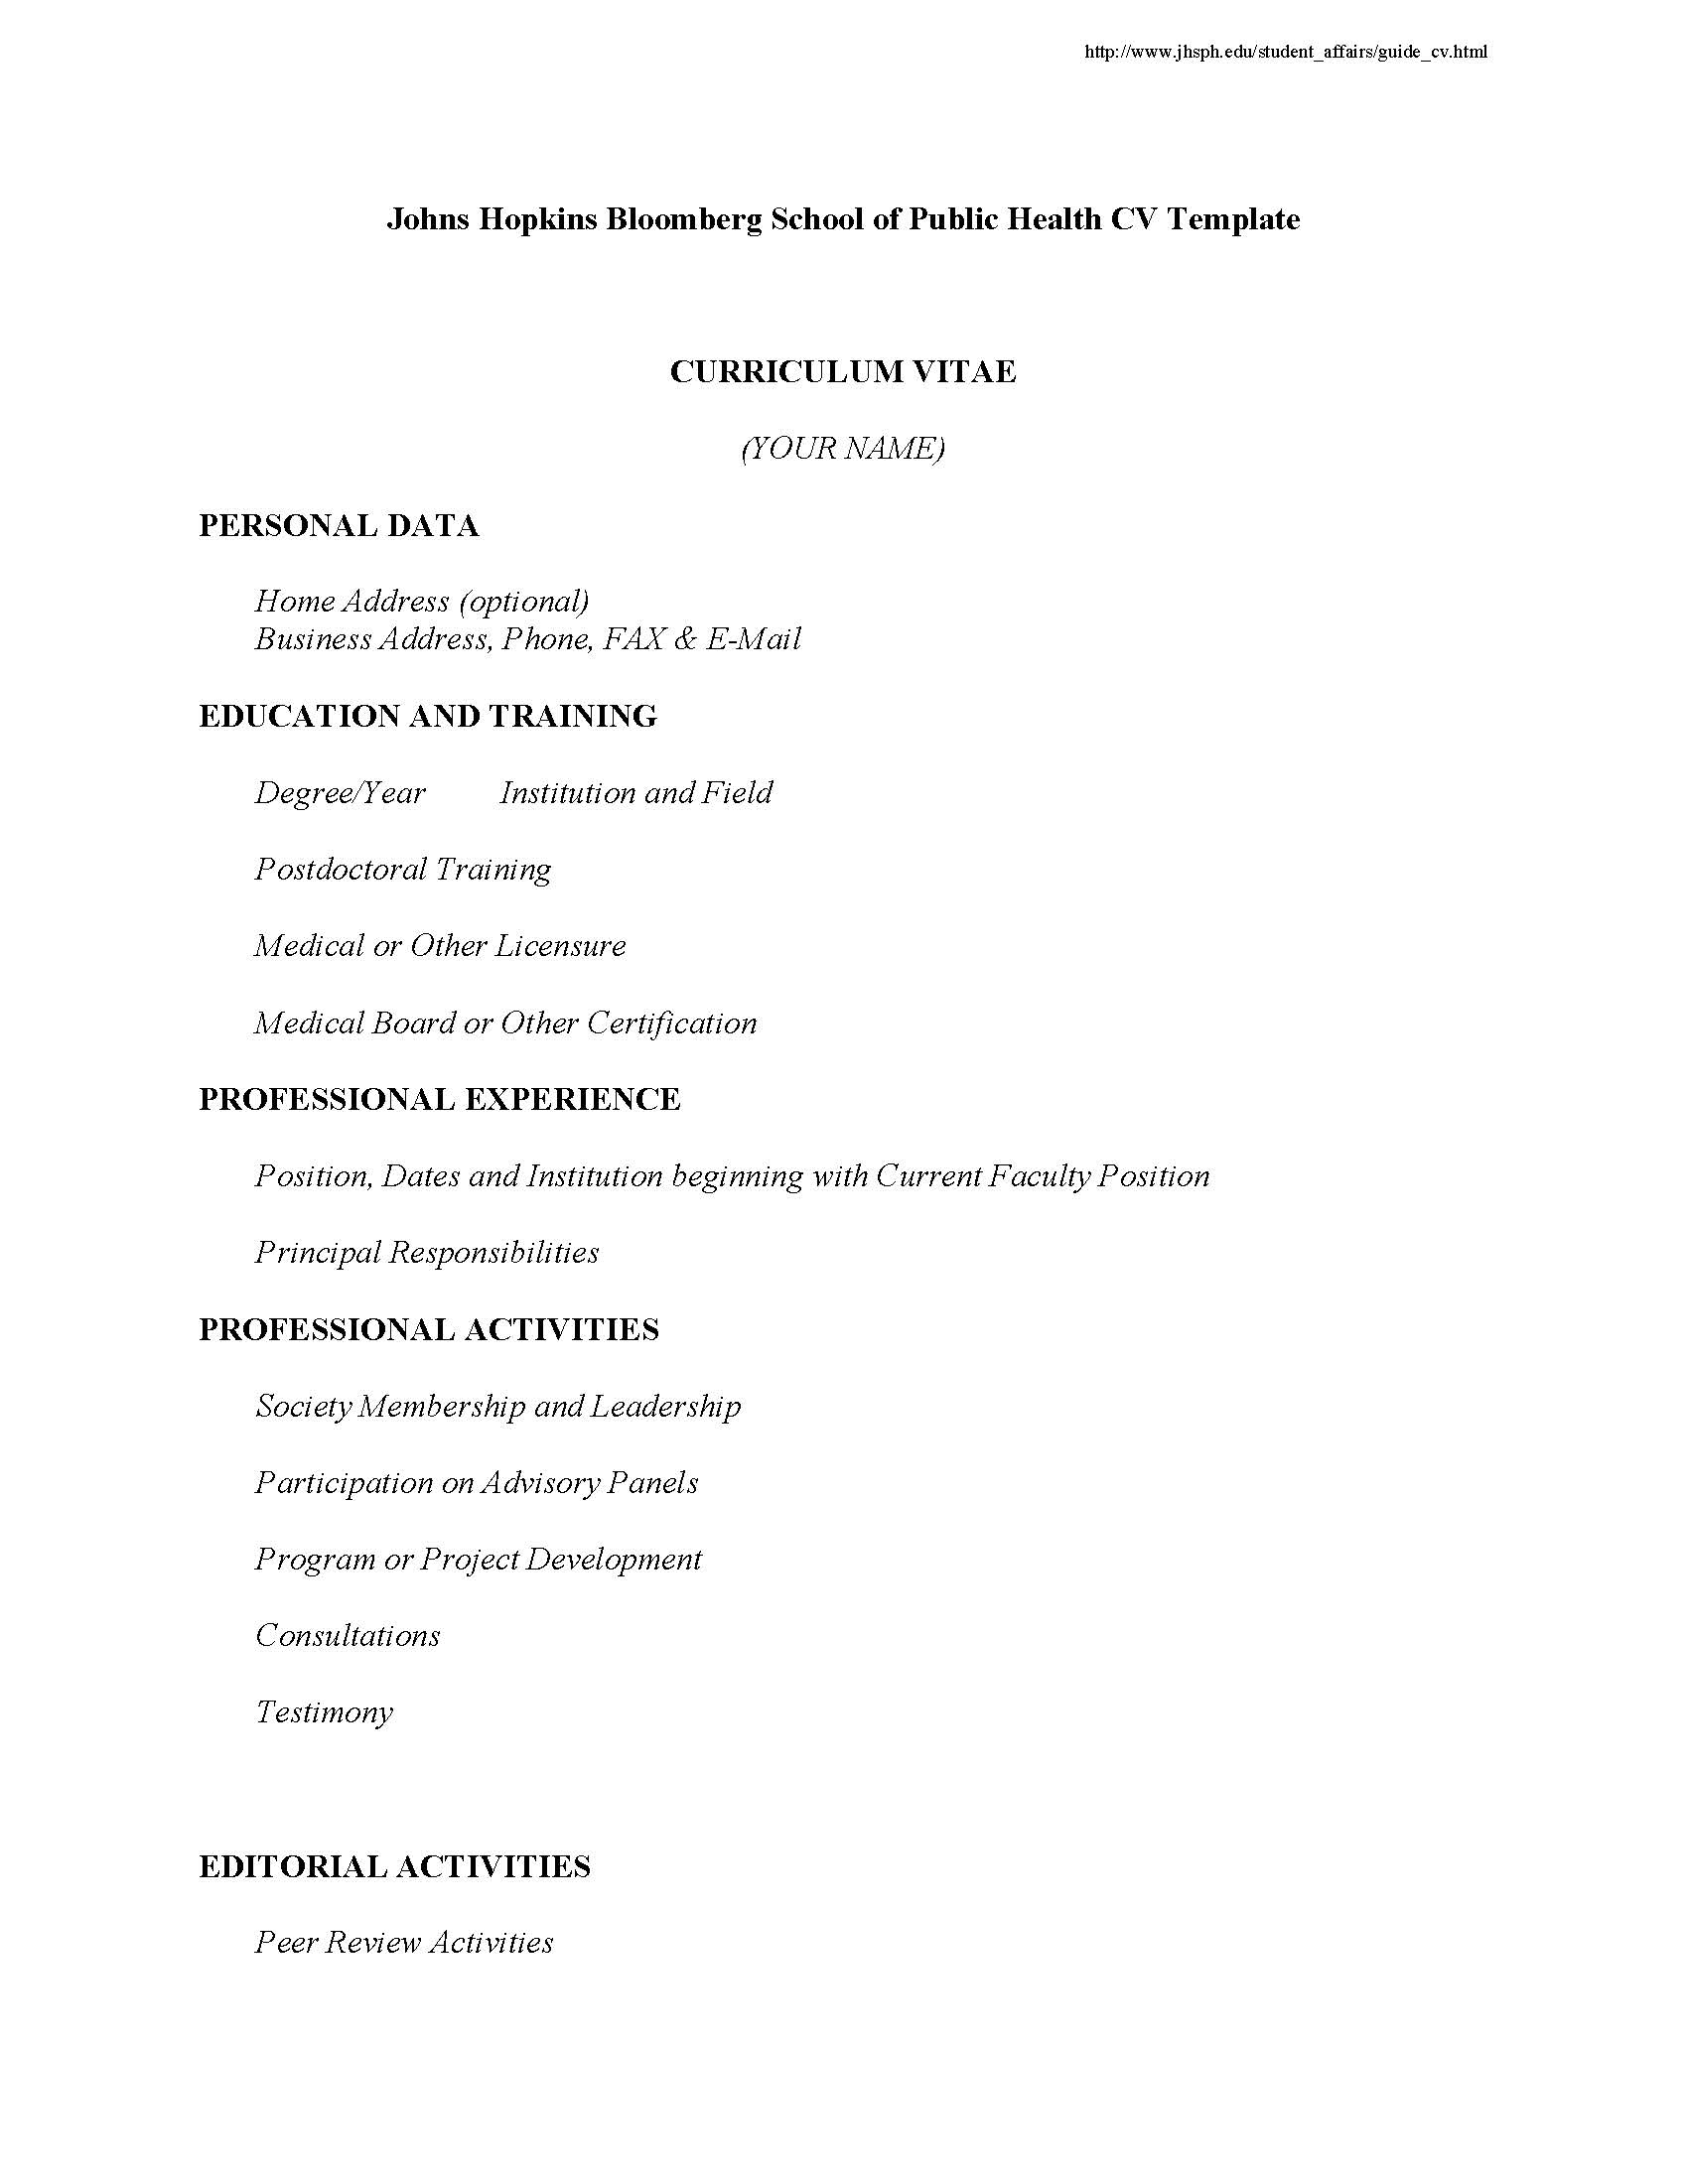 jhsph cv template - Public Health Resume